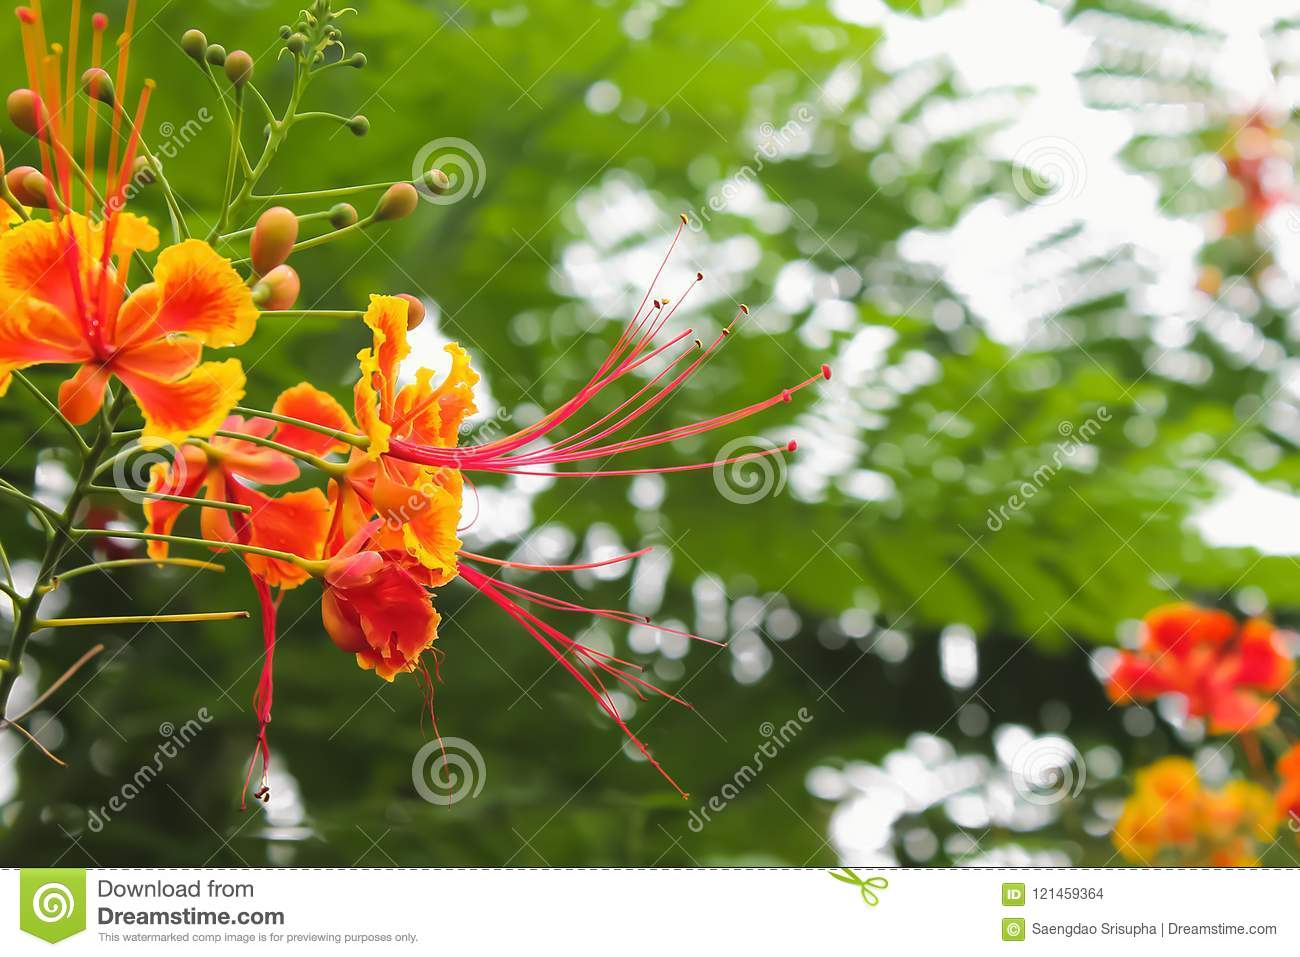 Acacia Concinna Tree With Red Flowers Seen From Afar Stock Photo